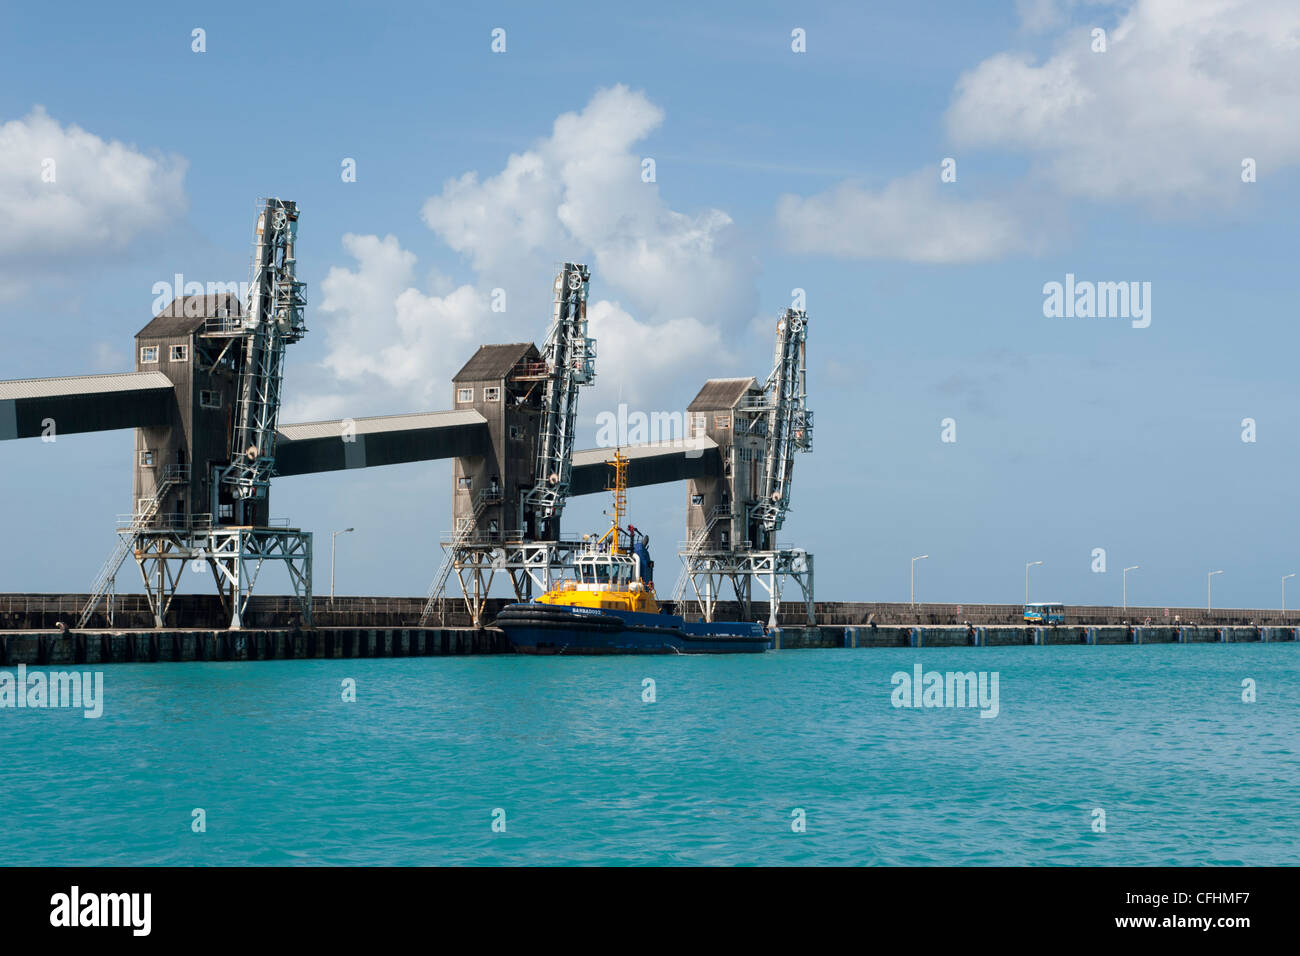 Loading and storage units for sugar cane in Bridgetown harbour, Barbados, The Caribbean - Stock Image